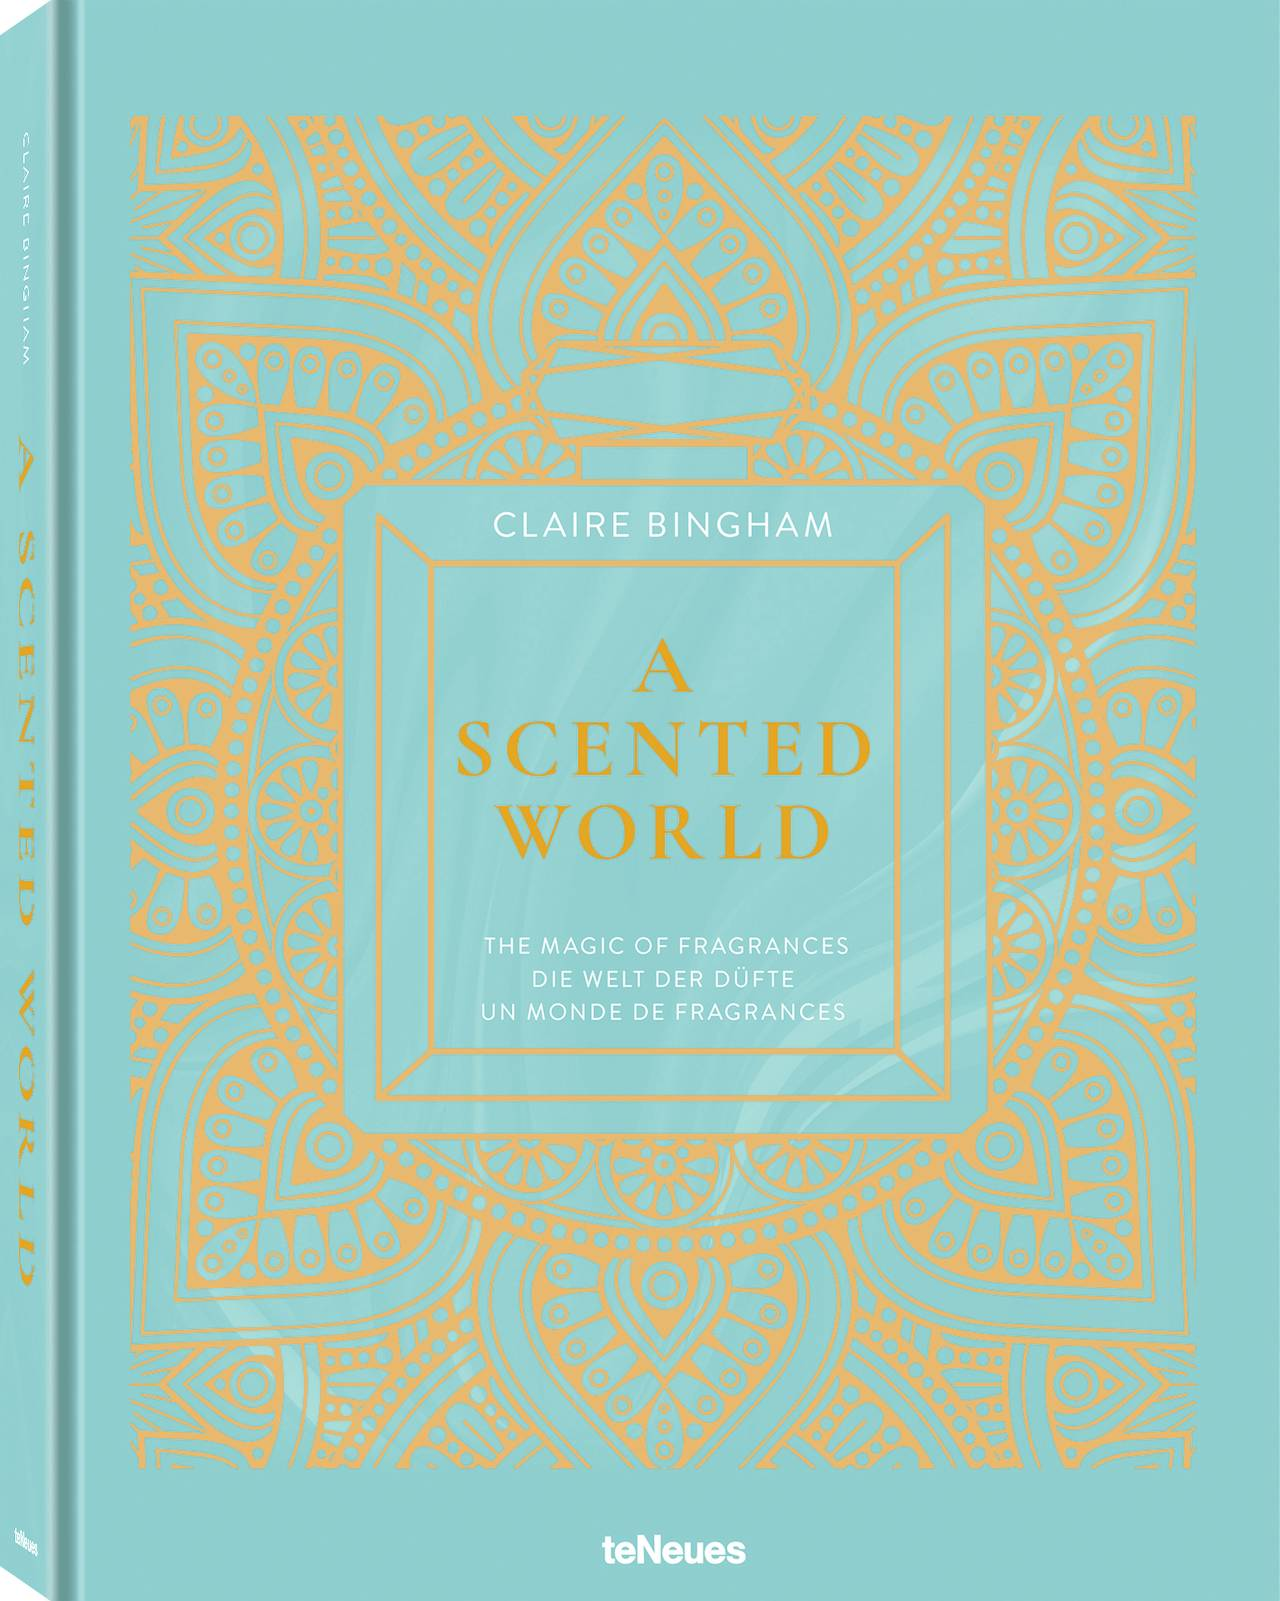 © A Scented World by Claire Bingham, published by teNeues, www.teneues.com